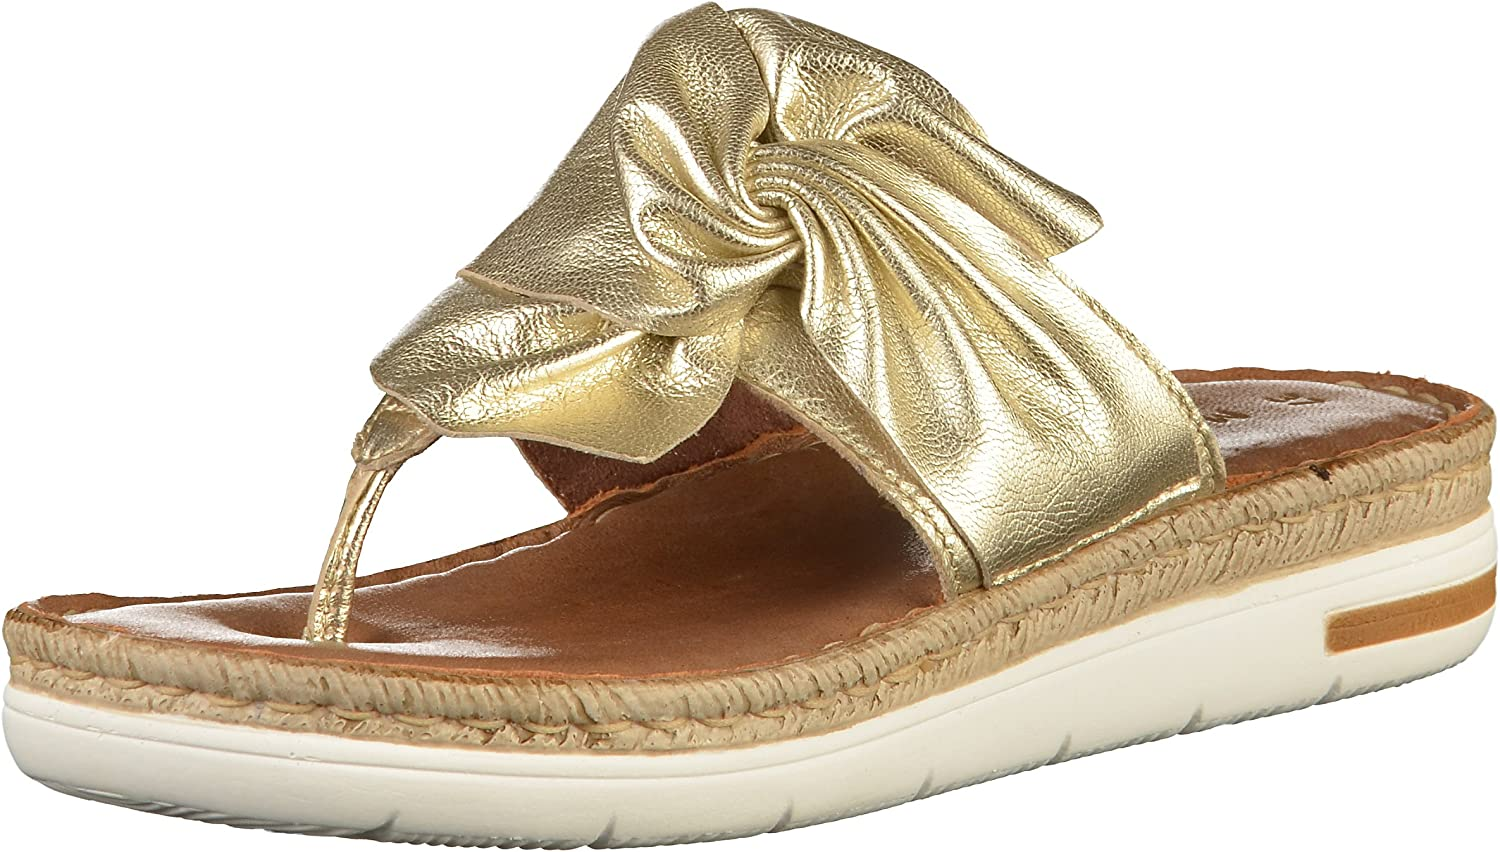 Marco Tozzi Womens Premio Real Leather Thong-Sandal 27212